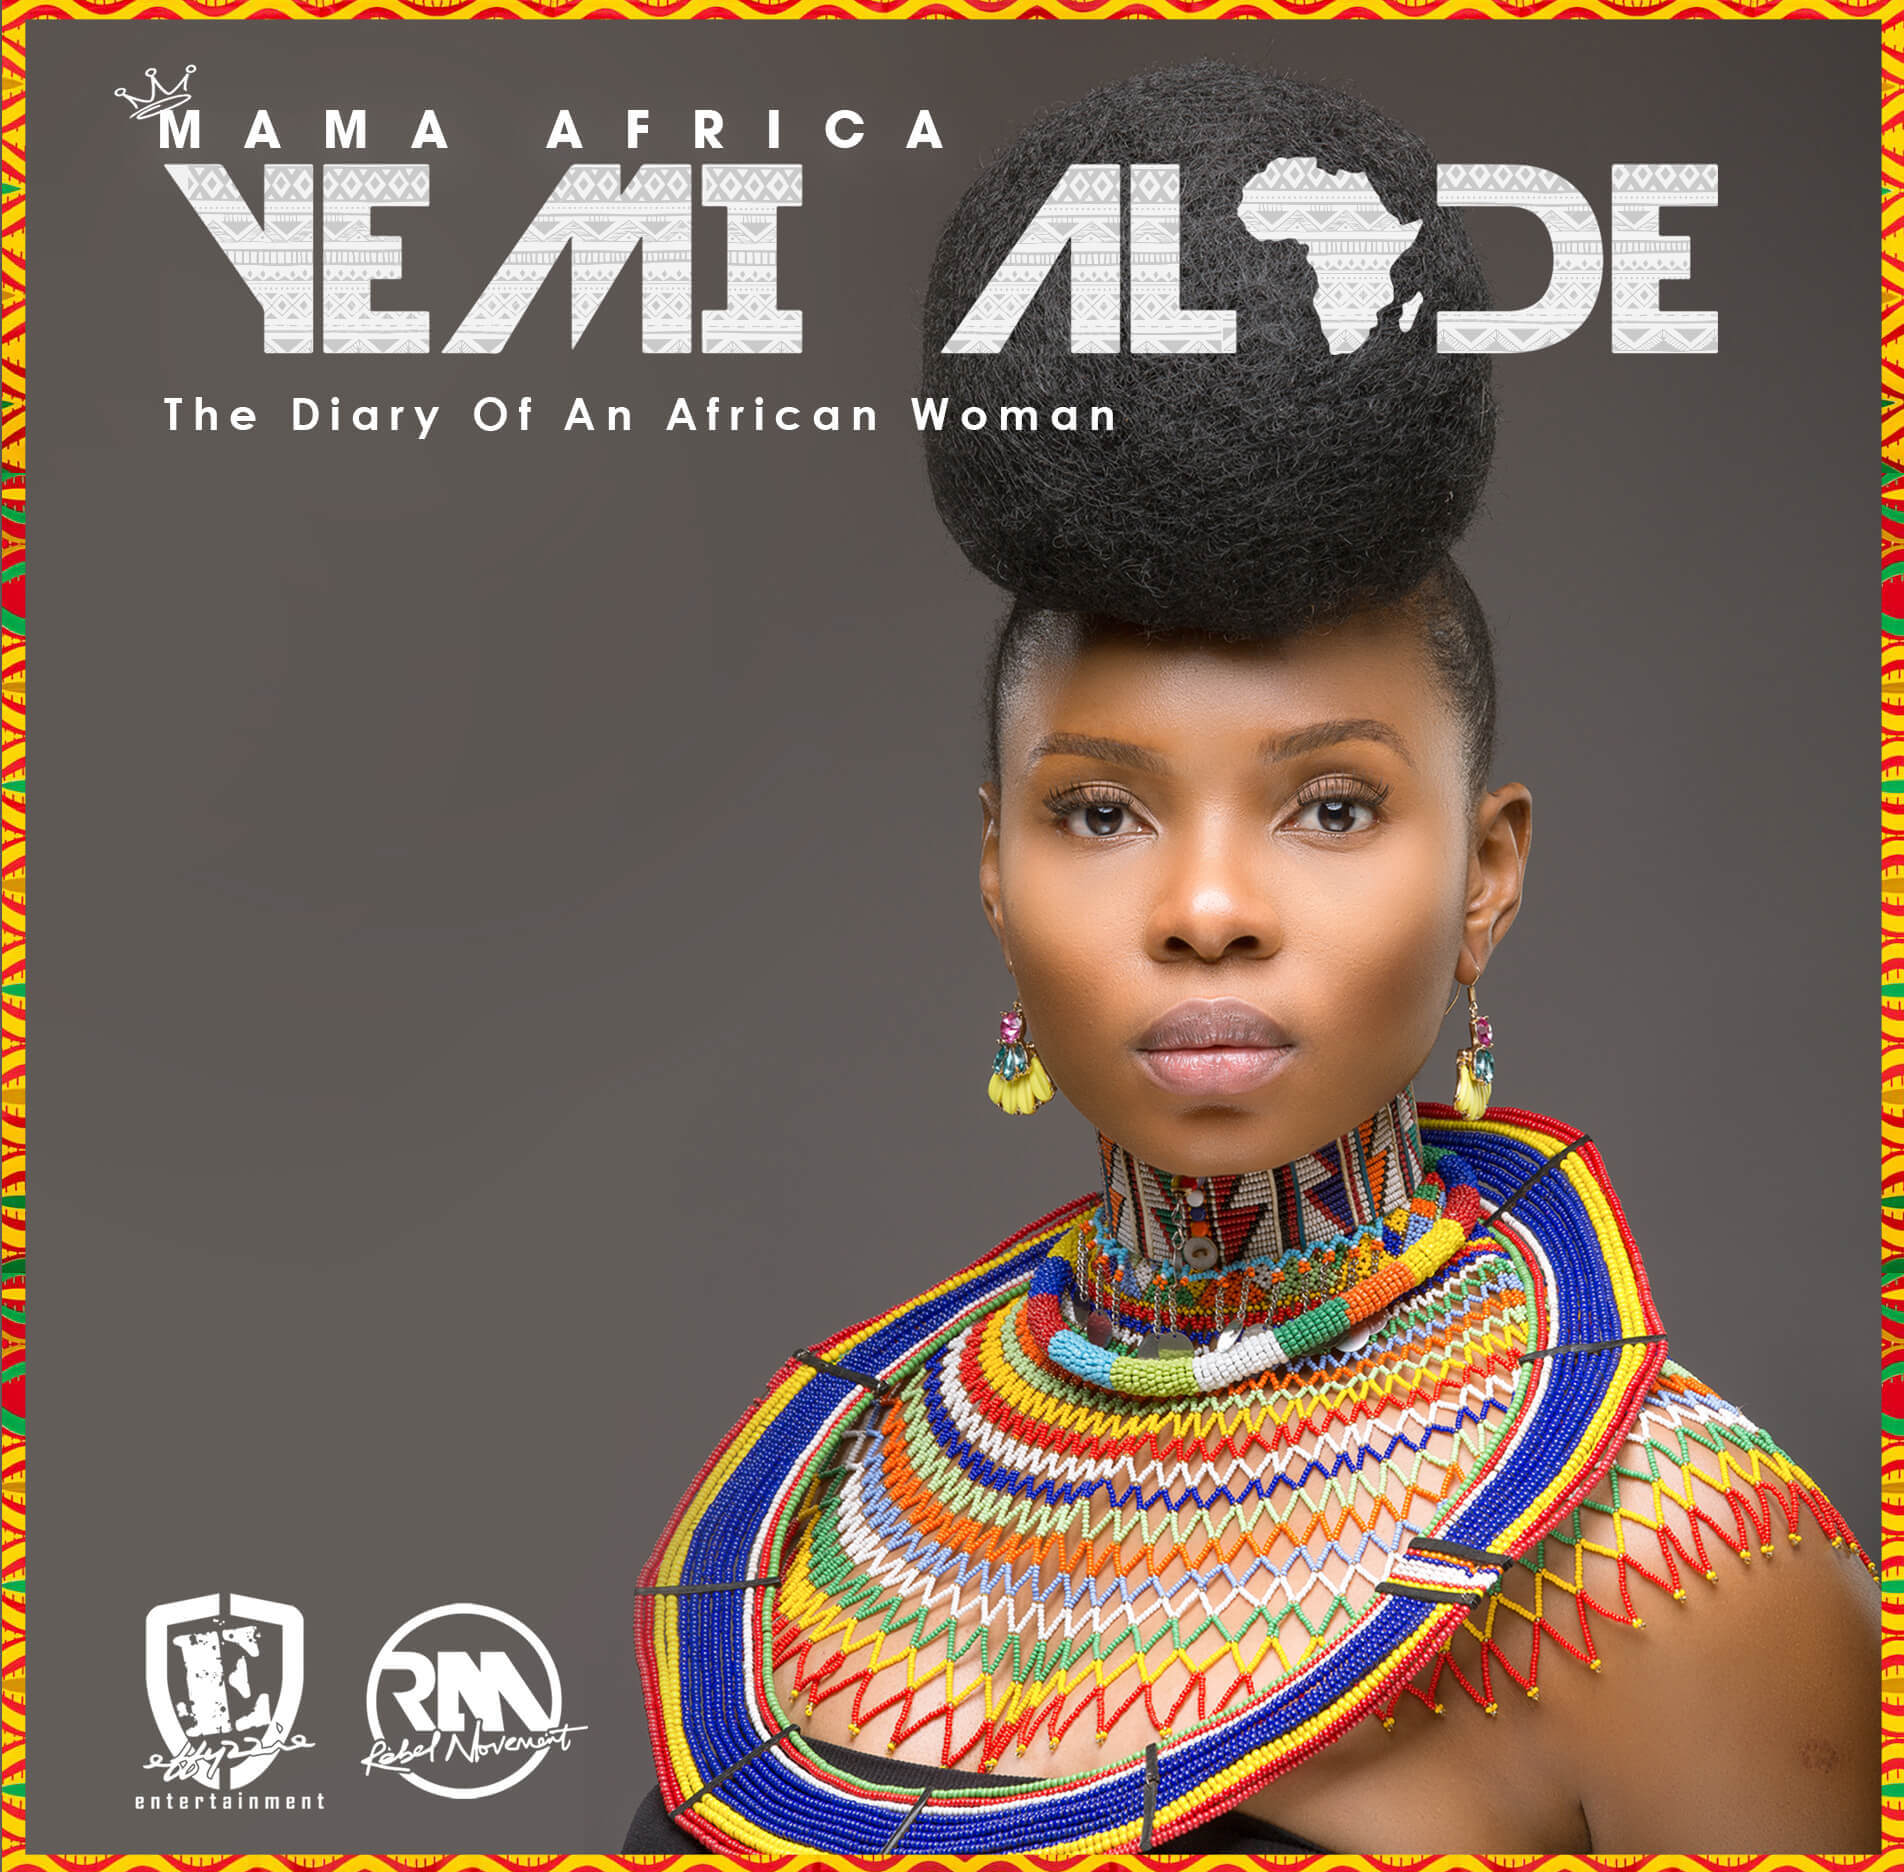 Most streamed Nigerian female afrobeats project of all time on Spotify